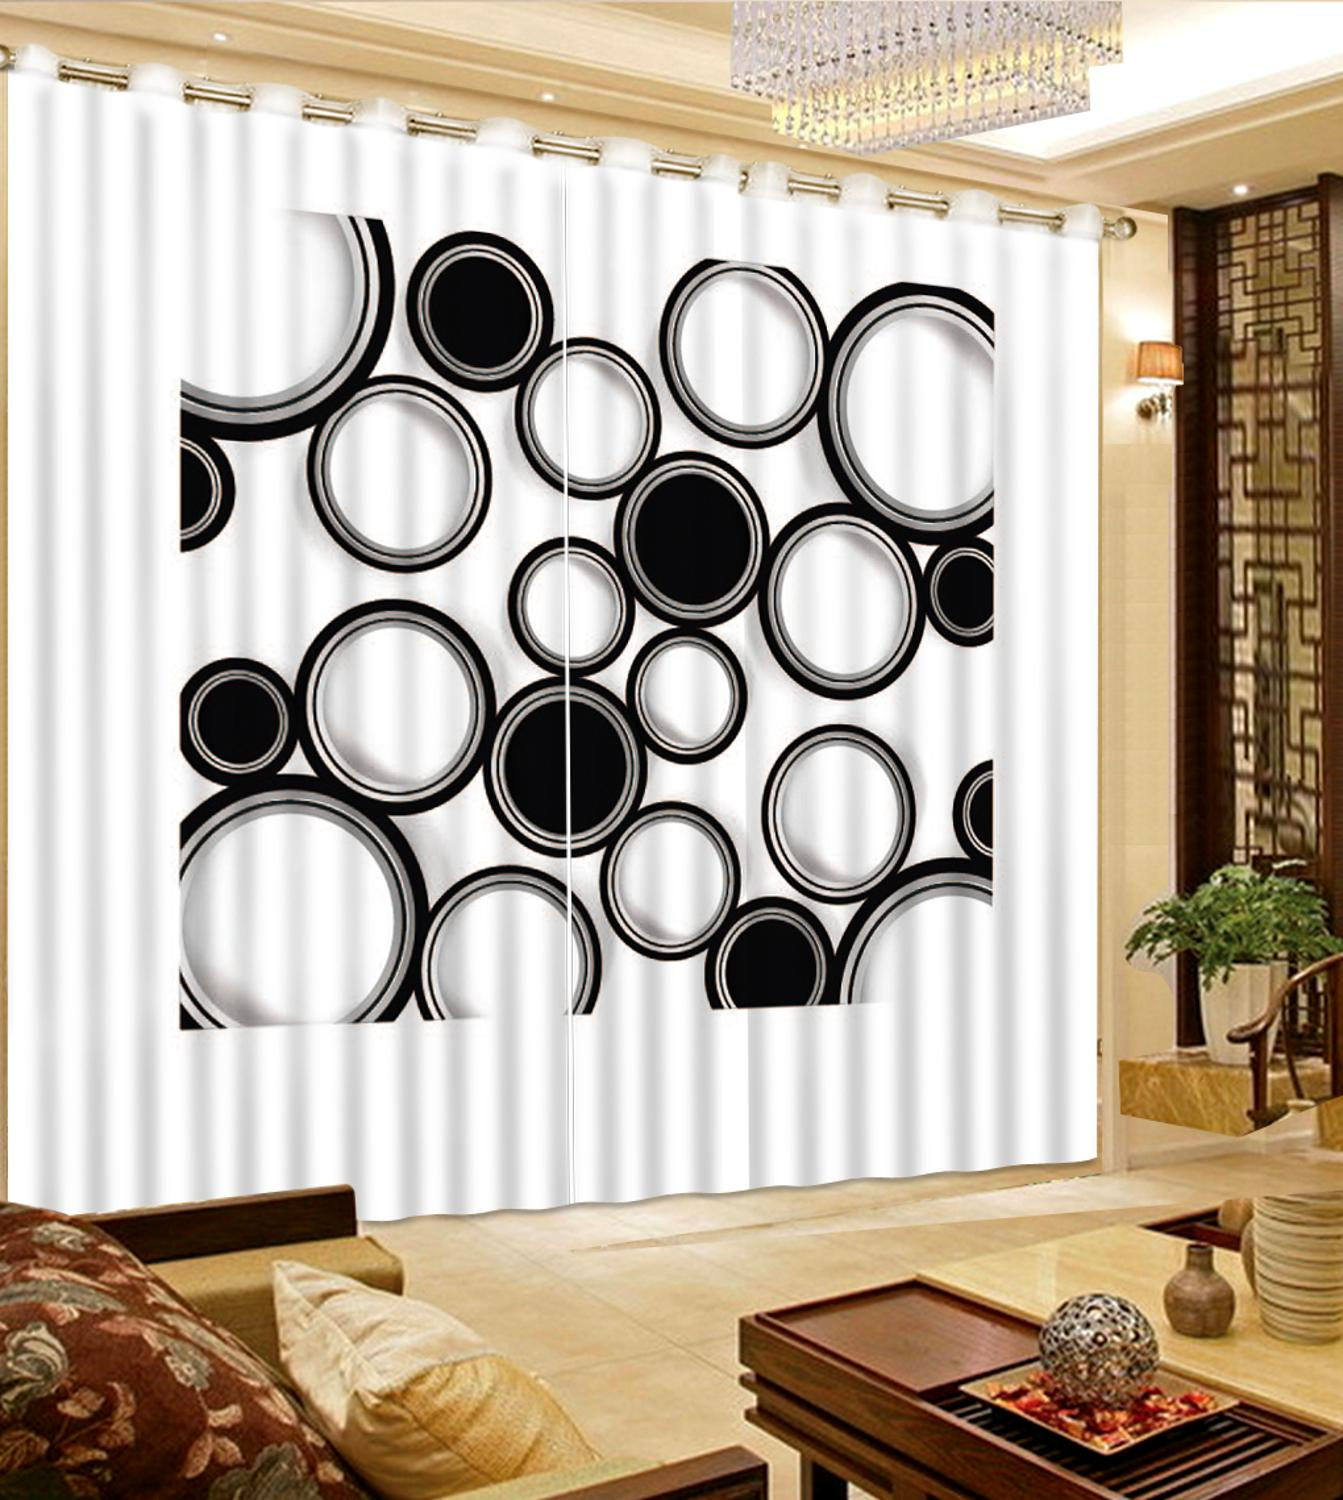 curtains home decor cutains Abstract circle living room bedroom Home Decoration window curtainscurtains home decor cutains Abstract circle living room bedroom Home Decoration window curtains